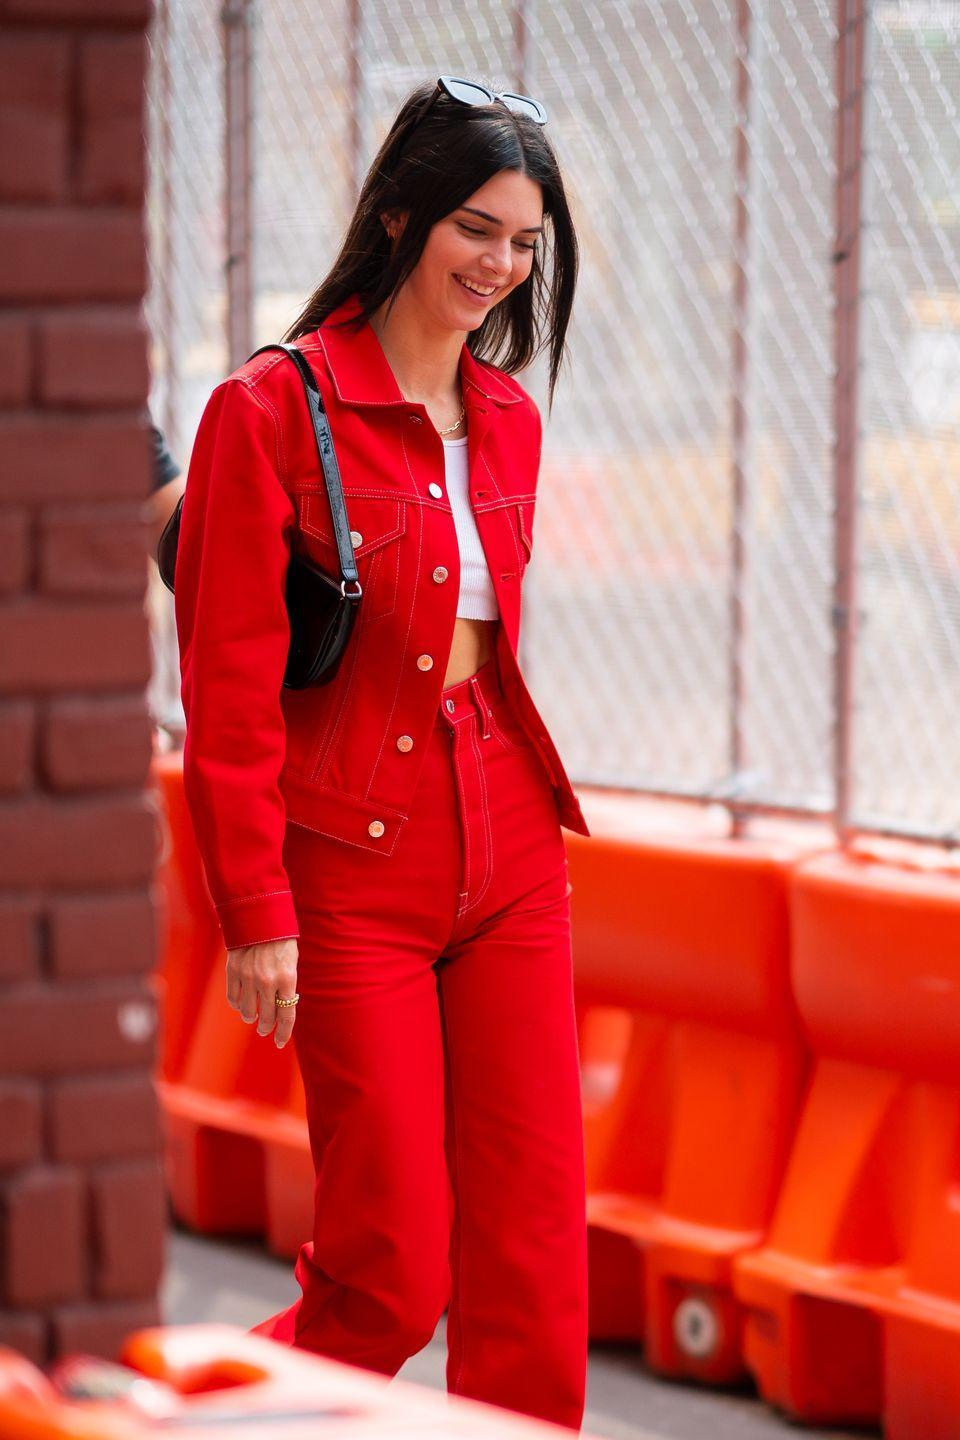 <p>Alright, I'll admit, monochromatic sets can be a <em>lot</em>. But they make for a great two-in-one. Wear together for a major statement or rock the pieces separately to tone it down a bit. <br><br></p>